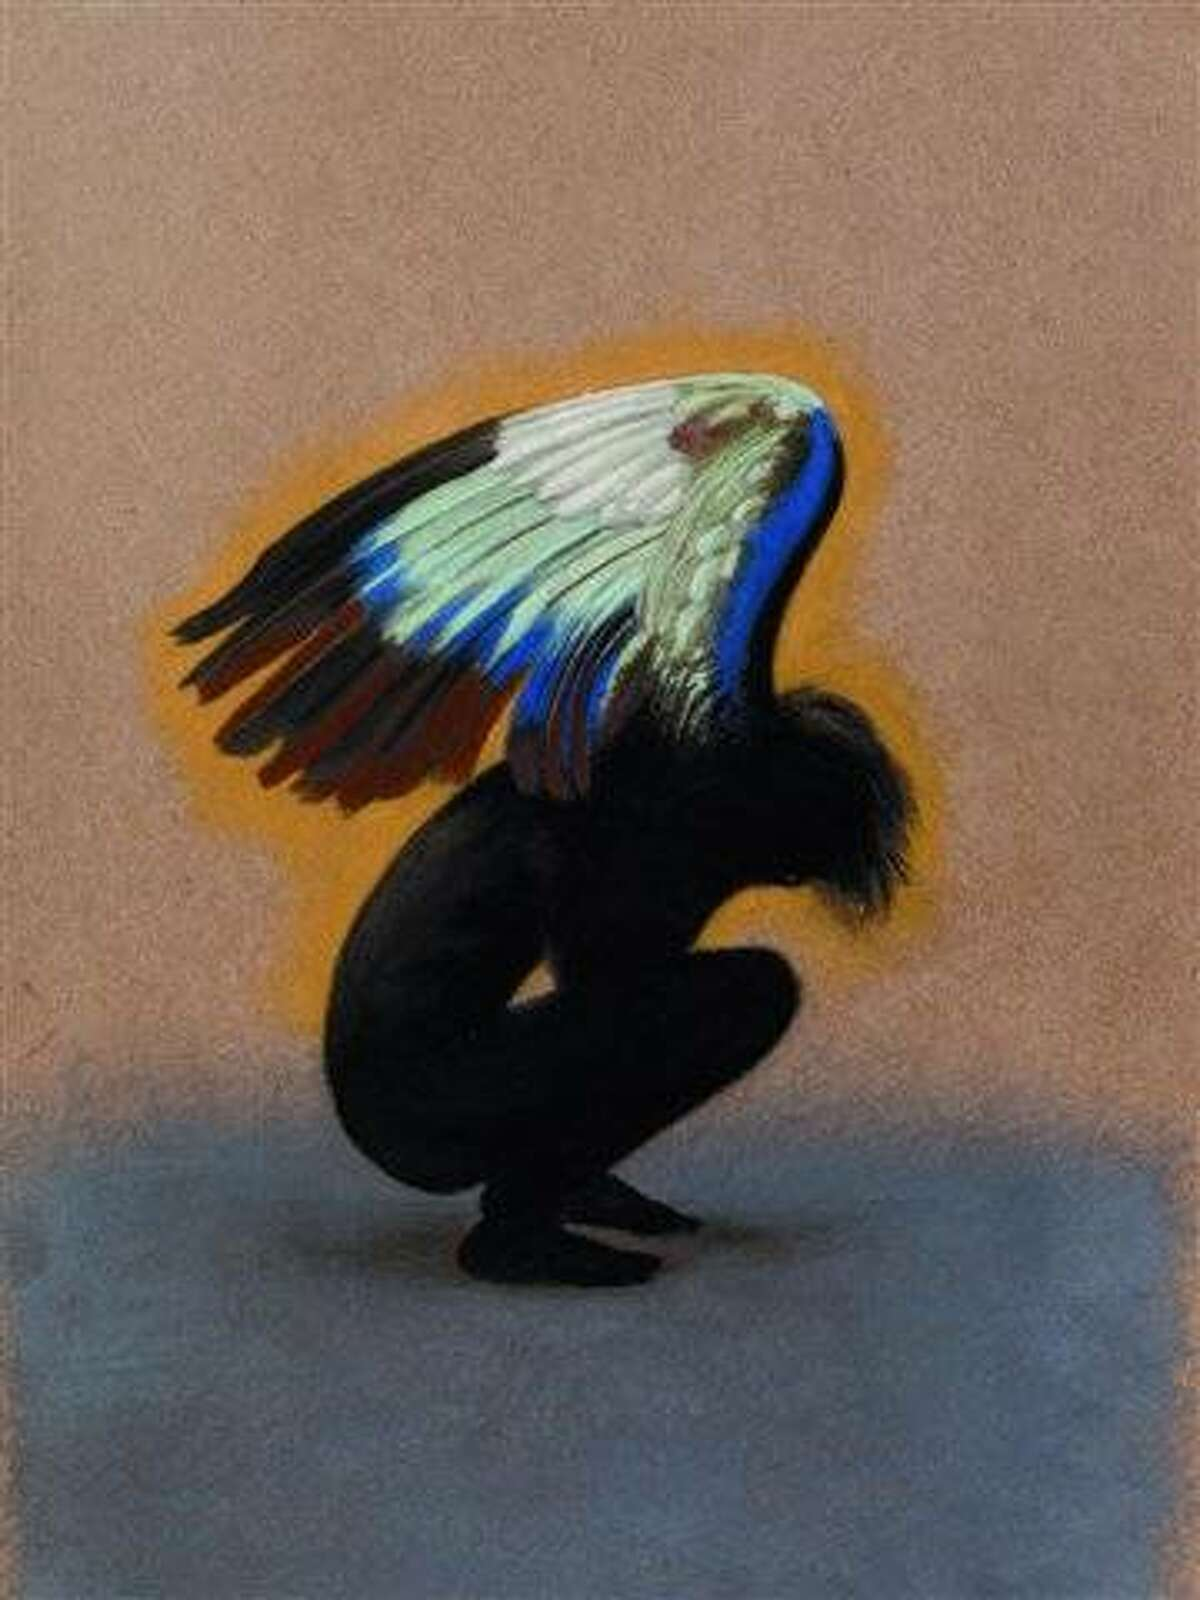 The original artwork by Milton Glaser for the Broadway production of Angels in America, which became an iconic image of the show, will be included in the exhibition. Colored pencil on board. Credit: Milton Glaser, 1993